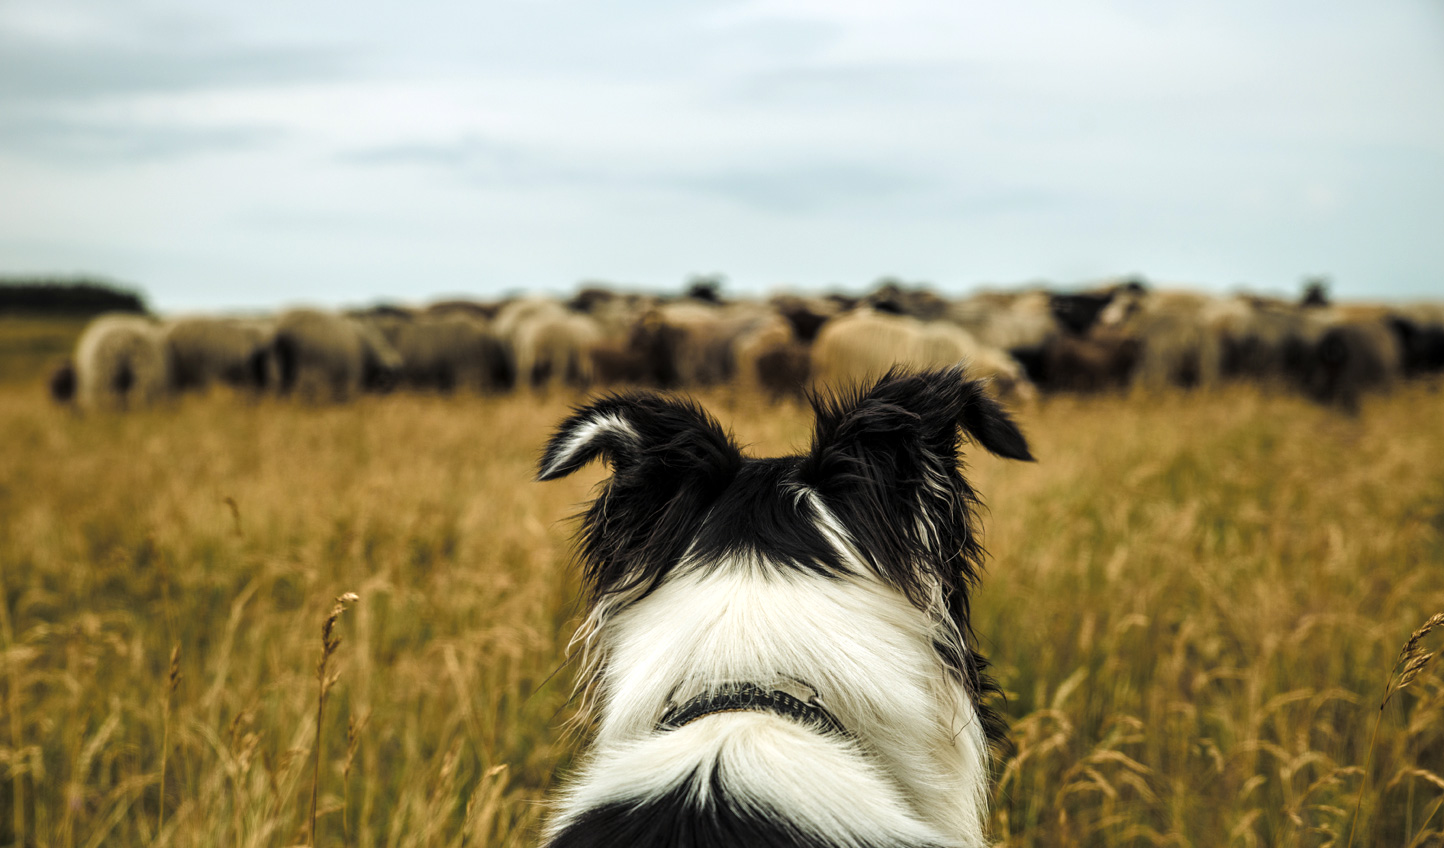 Join a local farmer and his sheepdog as they show you how to herd the sheep